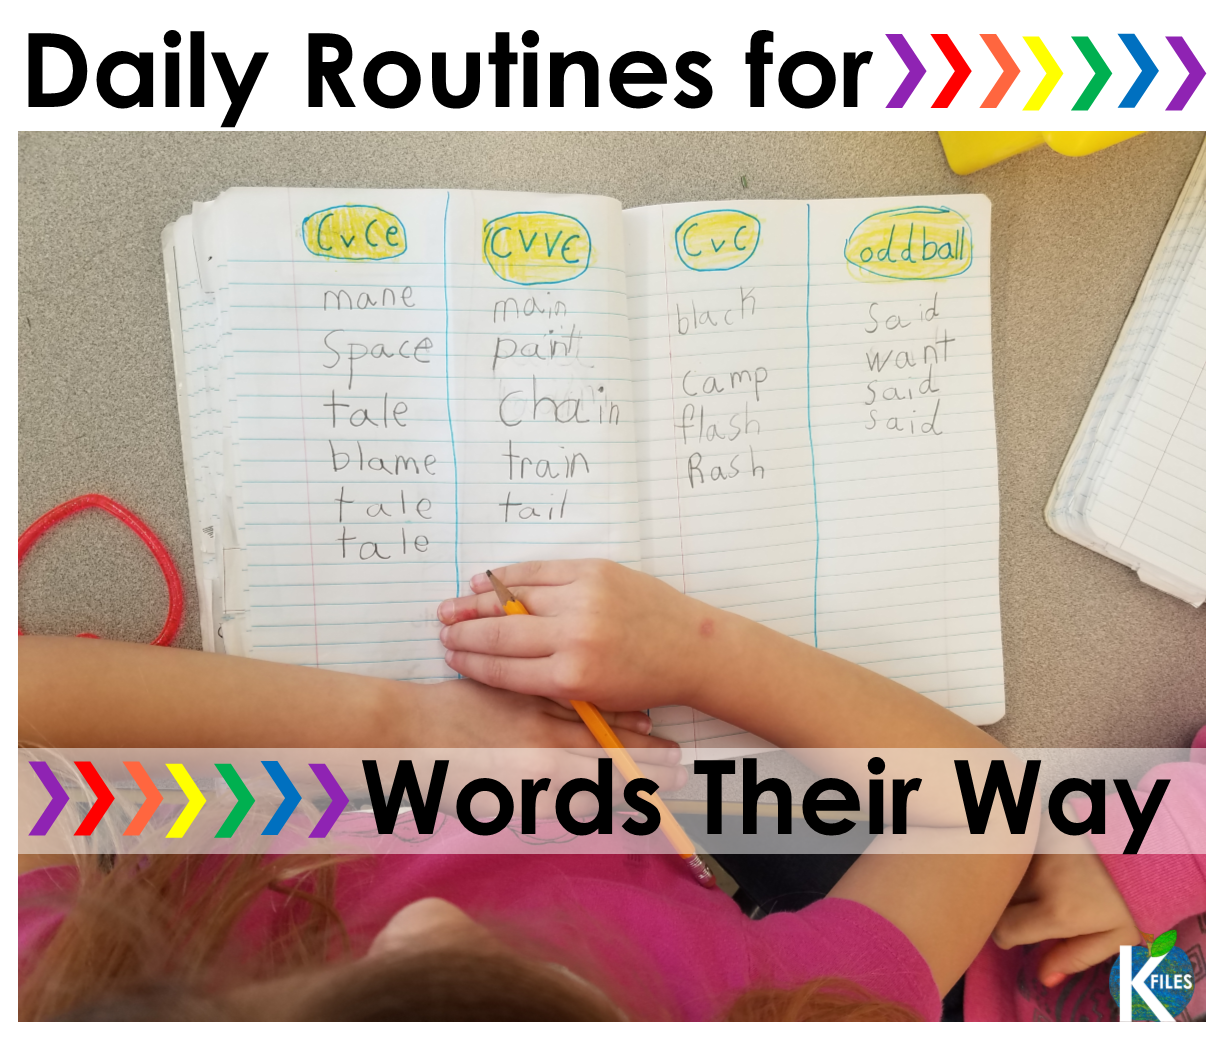 The K Files Words Their Way Our Way Part 5 Routine